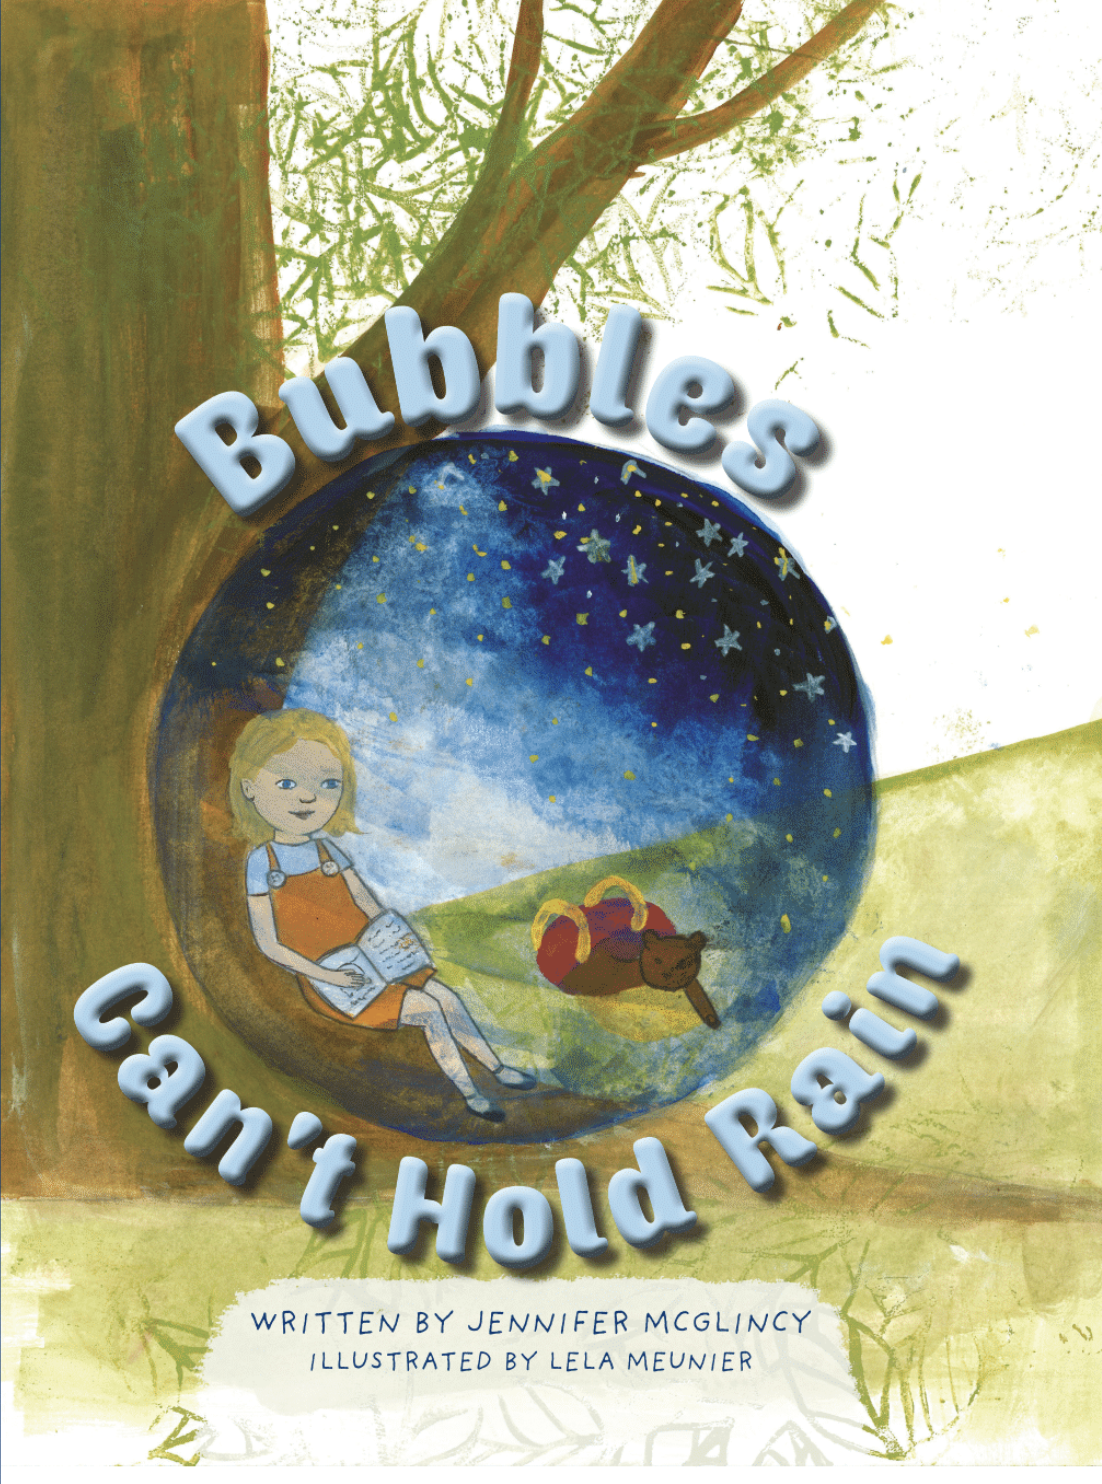 "Kirkus Reviews - ""A little girl learns to step out of her bubble of safety and into the scary world of friendship in this beautifully painted, rhyming picture book from debut author McGlincy and artist Meunier…An imaginative, inspired depiction of emerging from isolation.""-Kirkus Reviews"